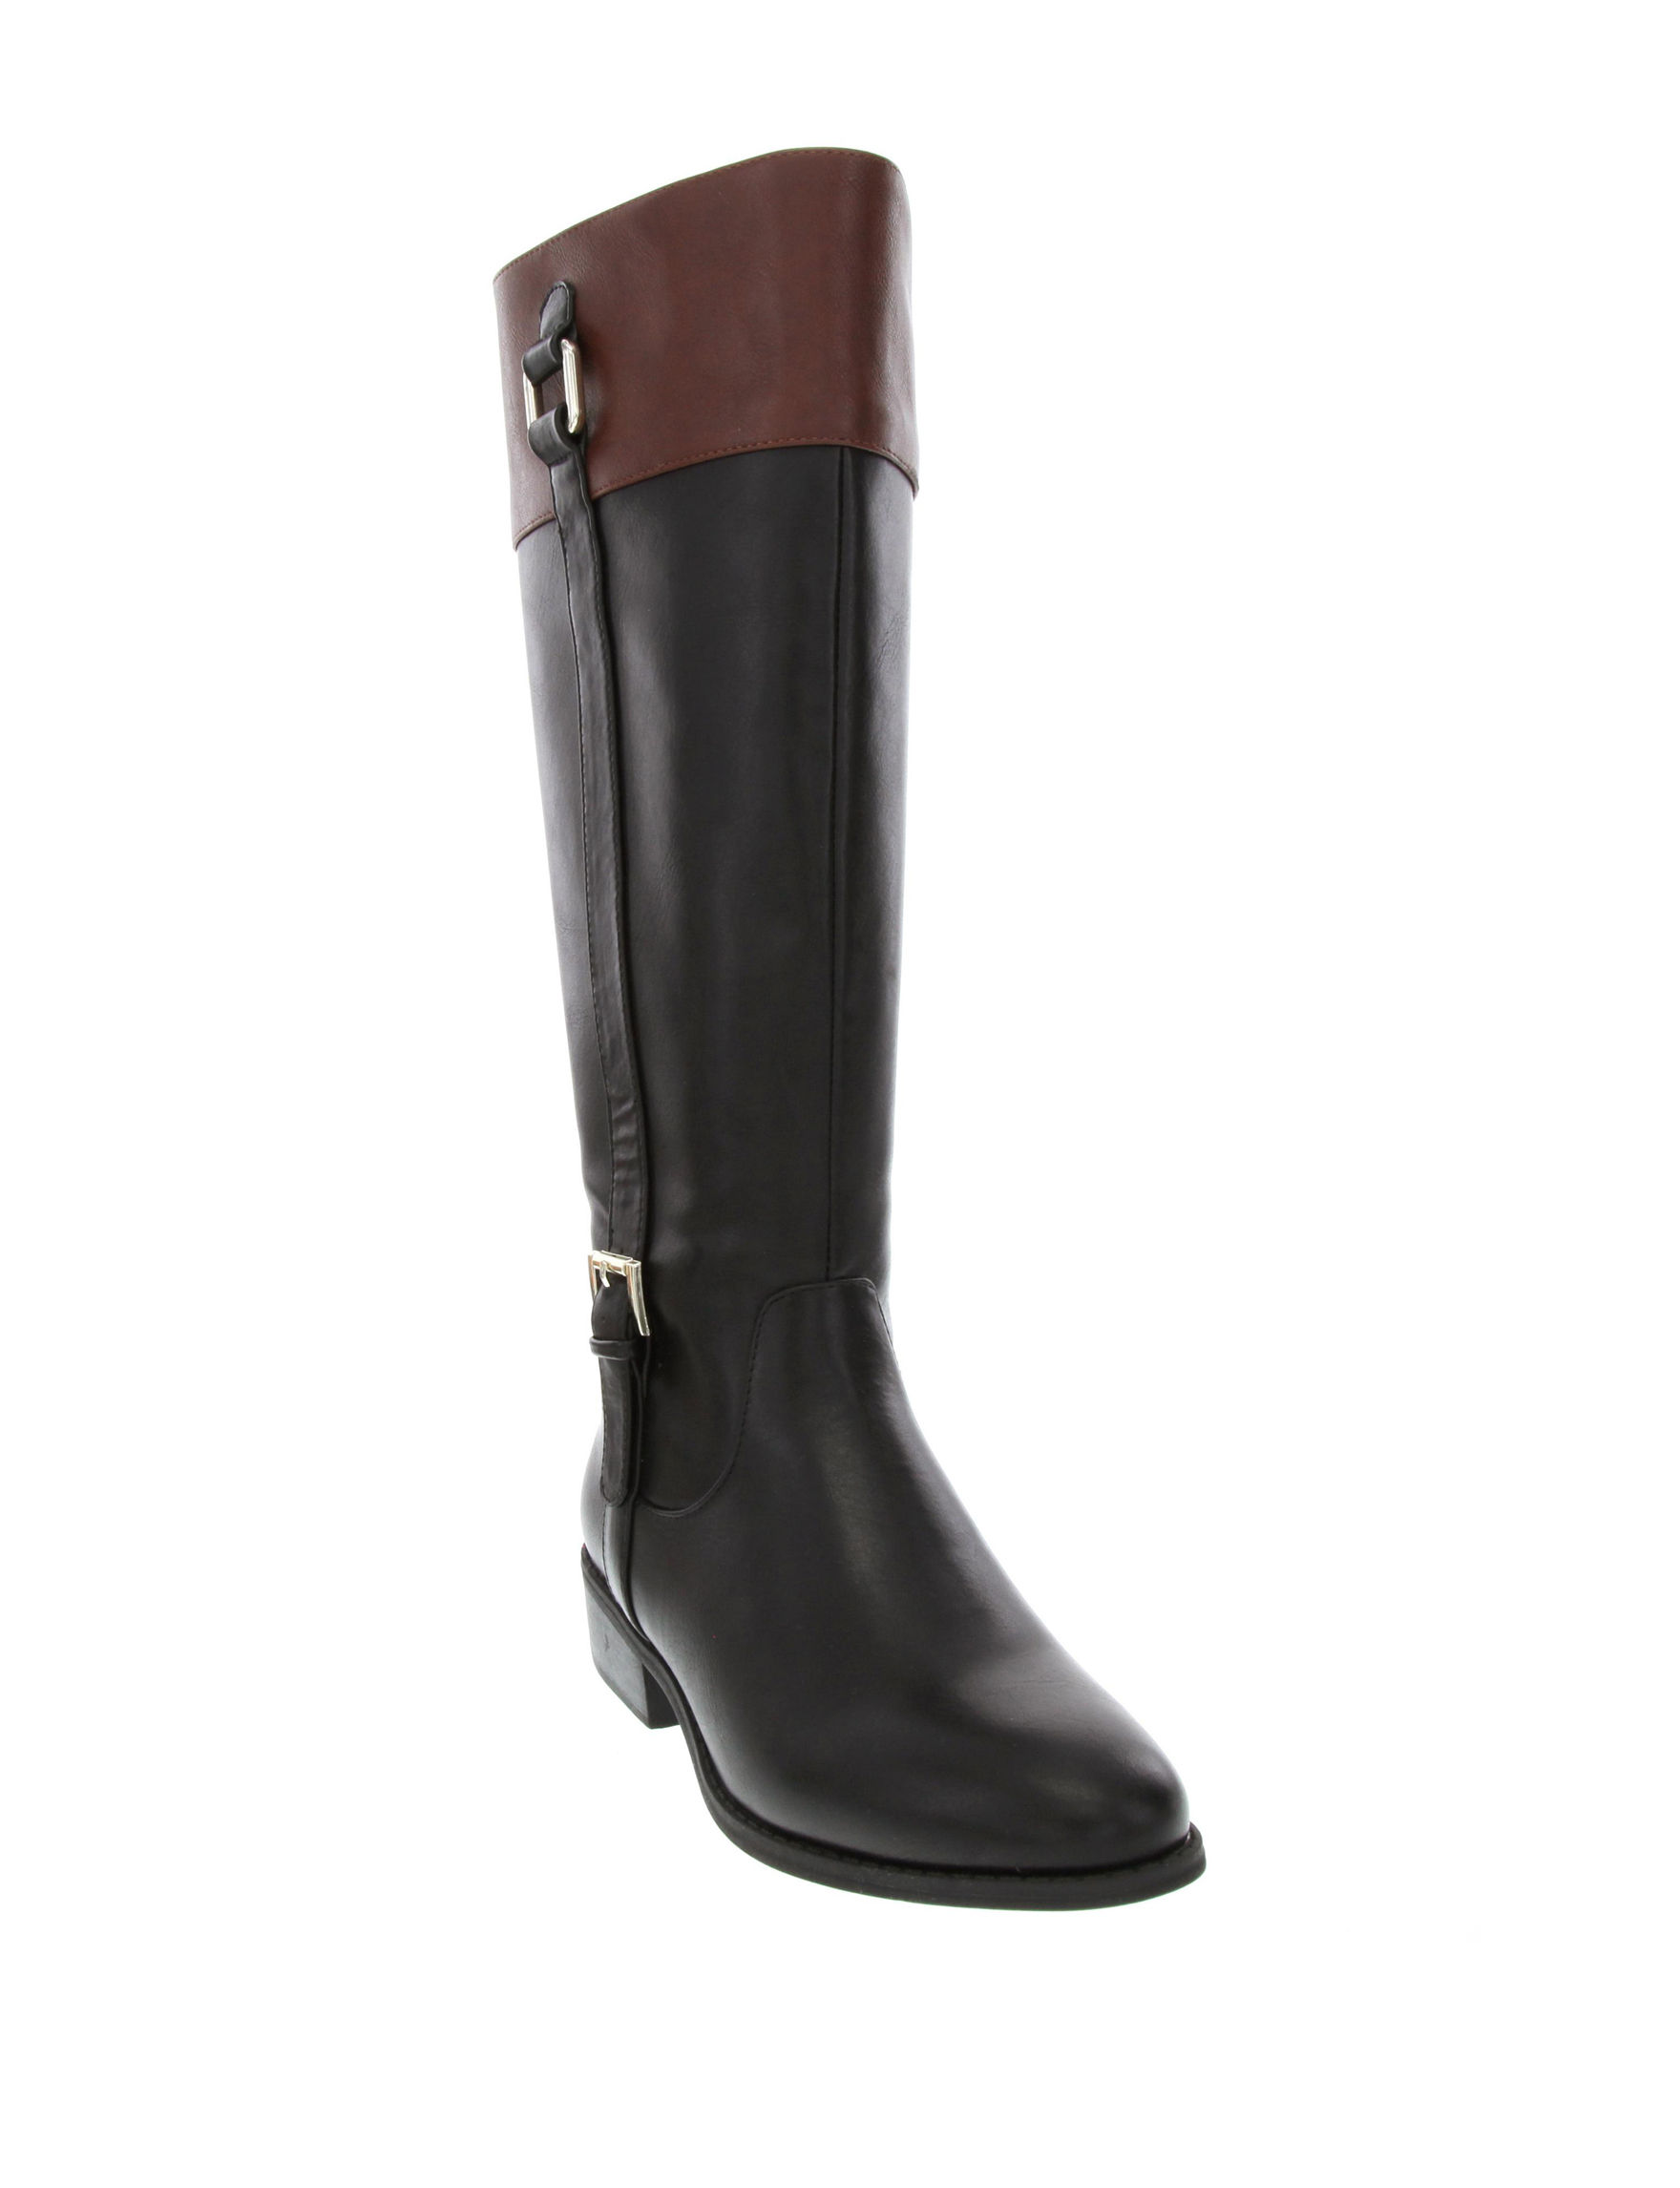 London Fog Two Tone Riding Boots Wide Calf